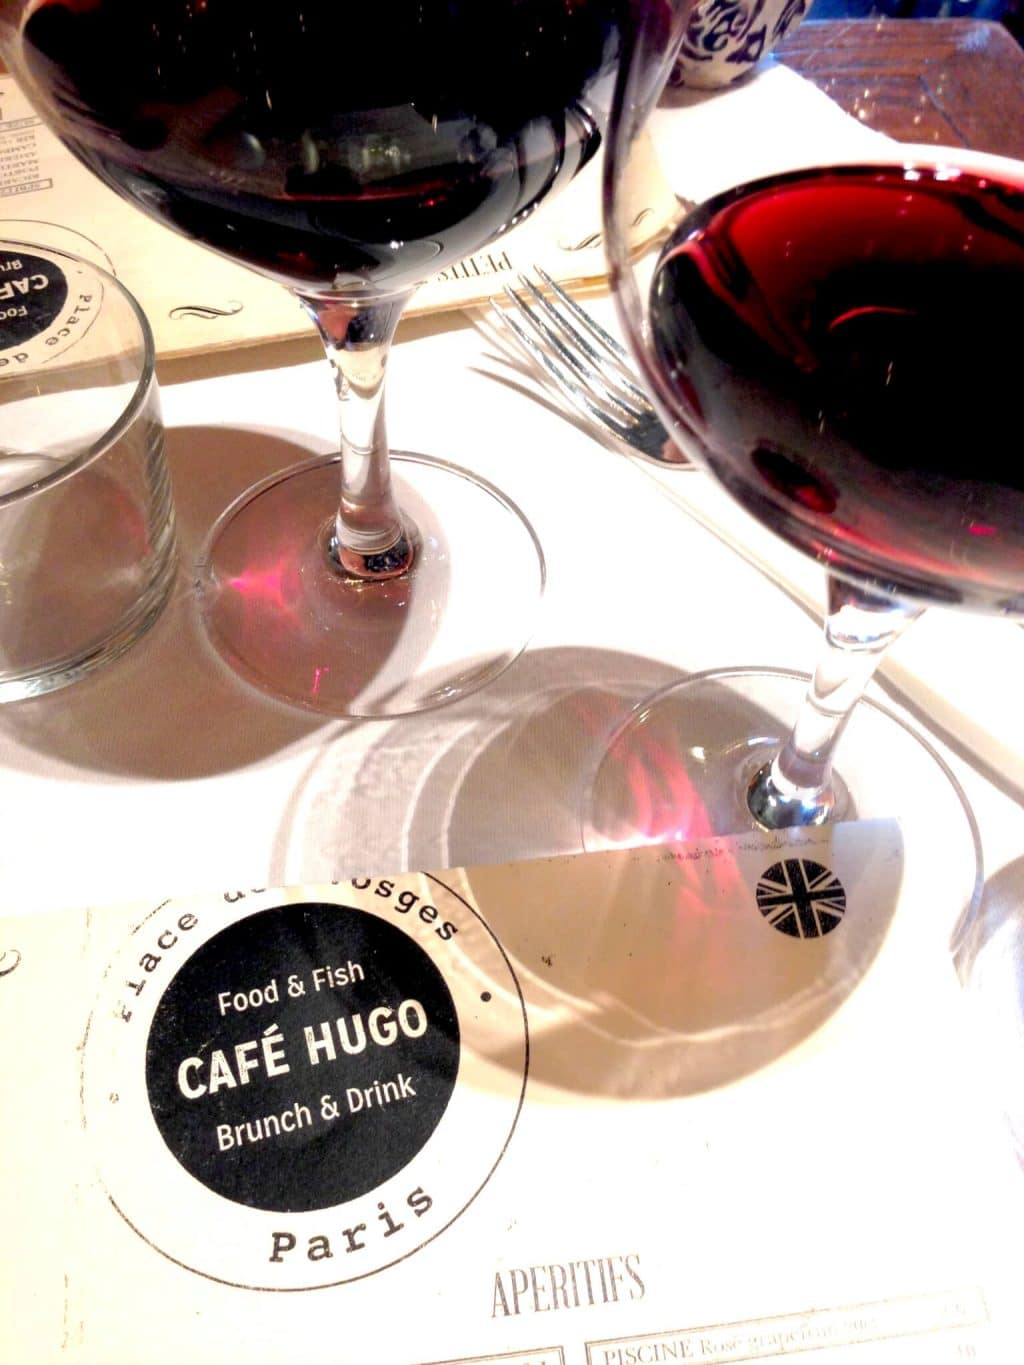 Wine at cafe hugo in Paris